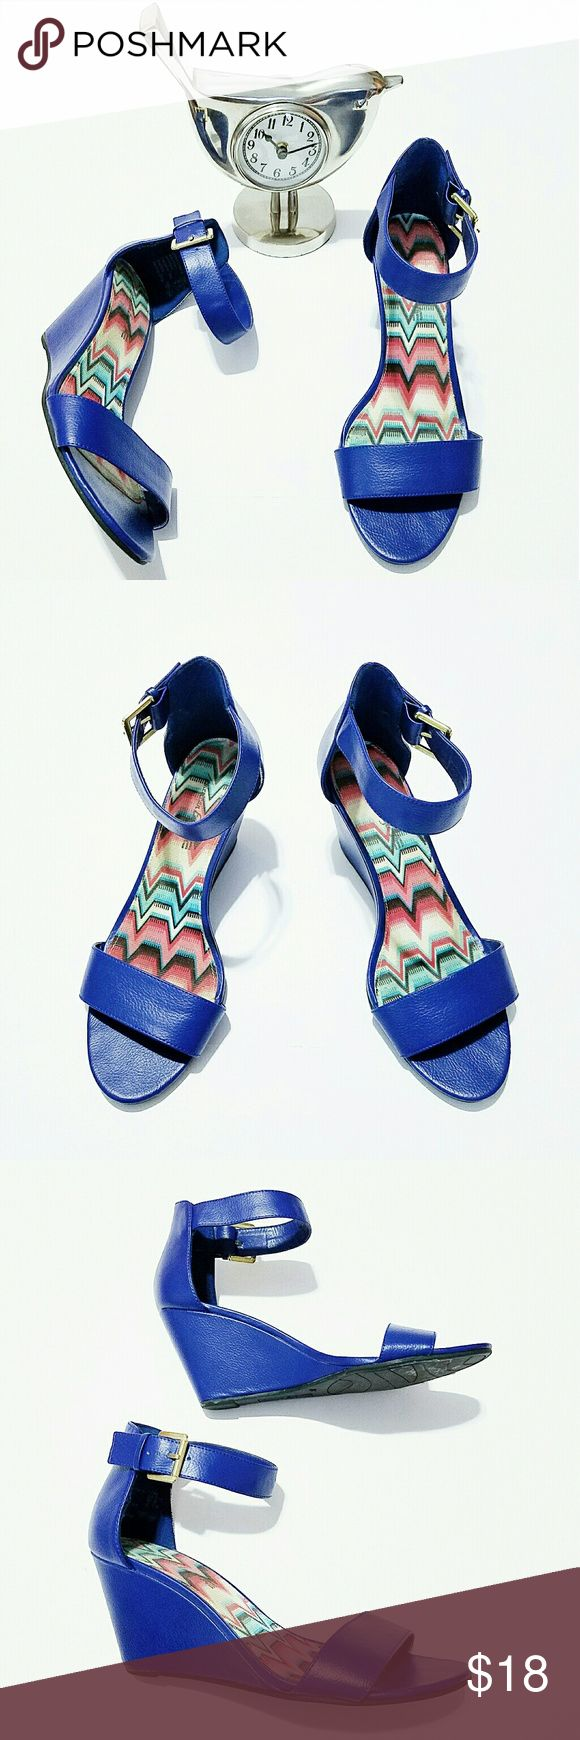 Royal blue wedge shoes size Cute wedge shoes. These are very comfortable. Worn once. In excellent condition. Size 9W. American Eagle Shoes Wedges